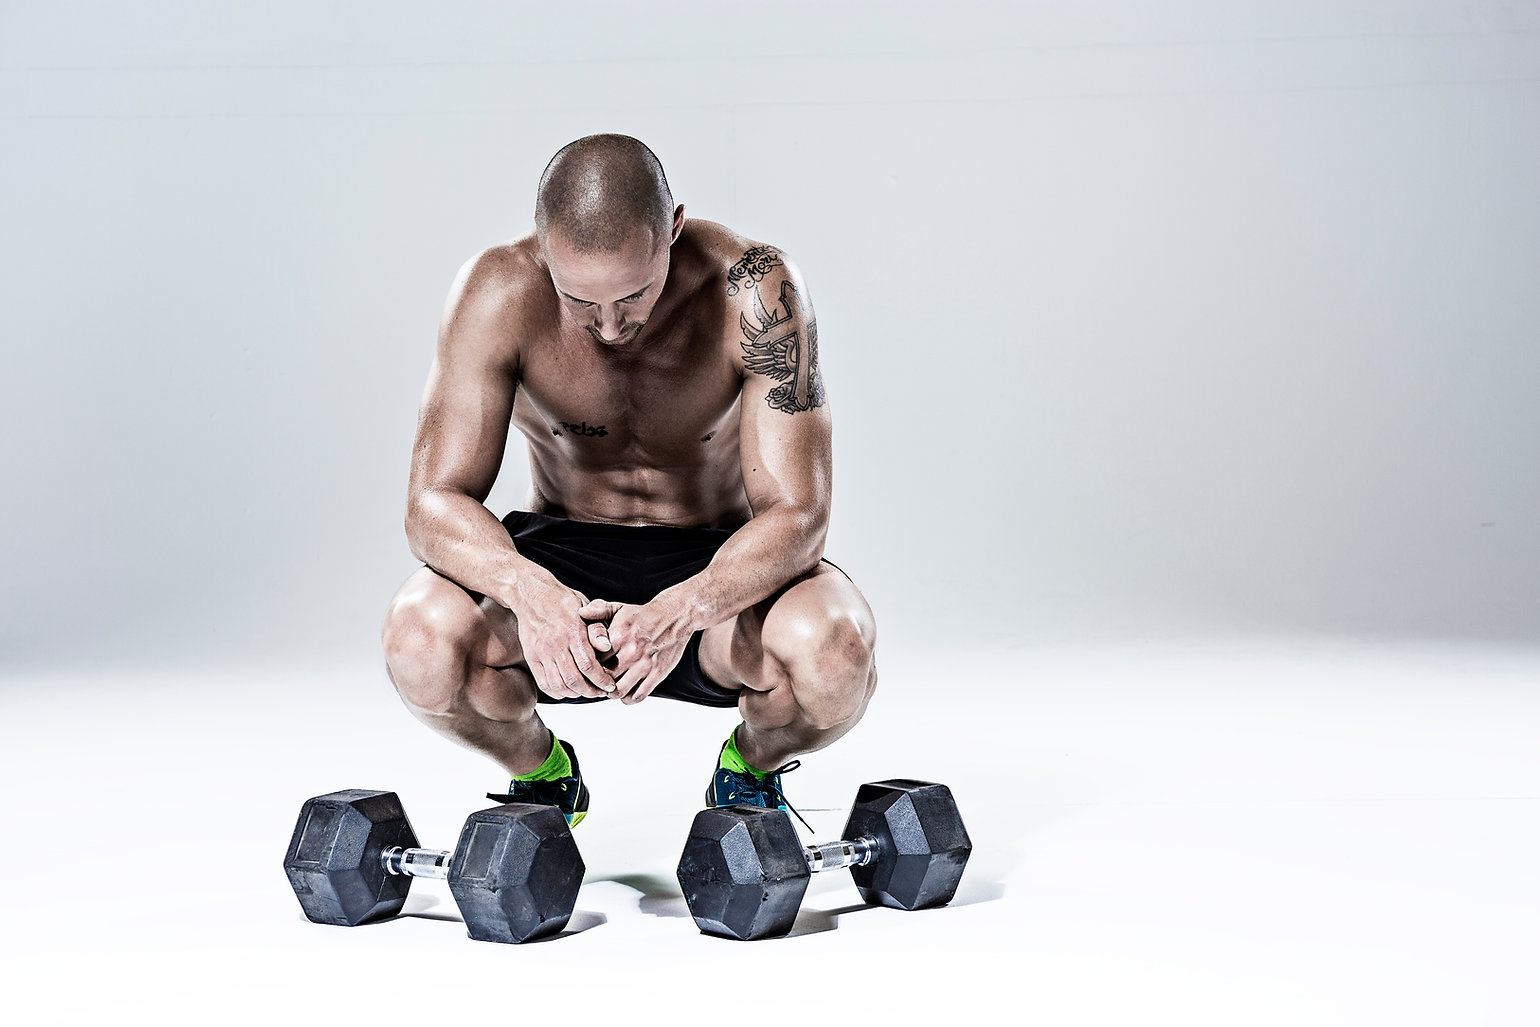 Workout with Dumbbells